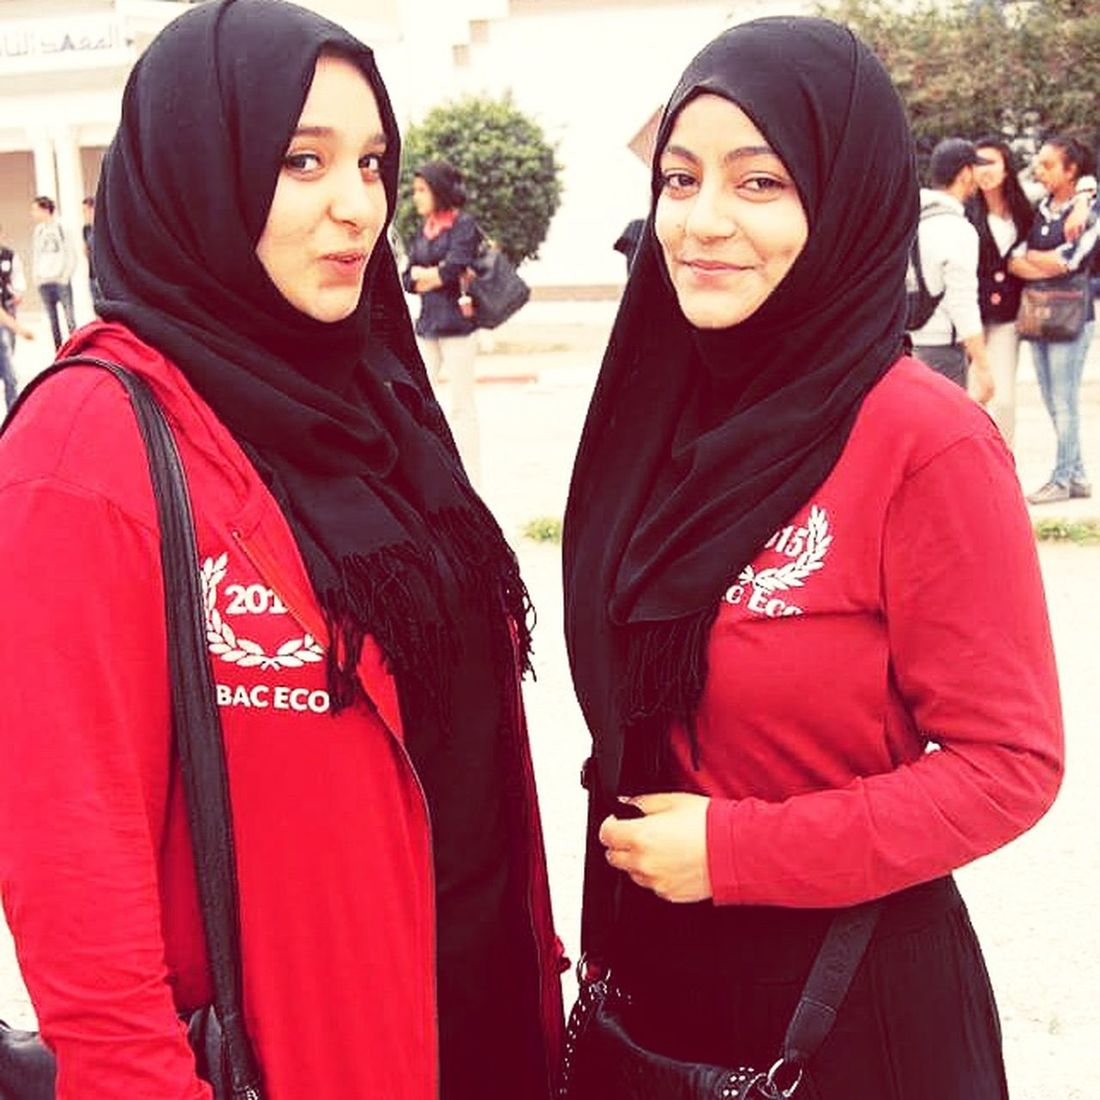 Hi! Taking Photos Enjoying Life Studying Have A Nice Day♥ Love ♥ Be Happy Safa :* We Are Beautiful We Are Best Friends!